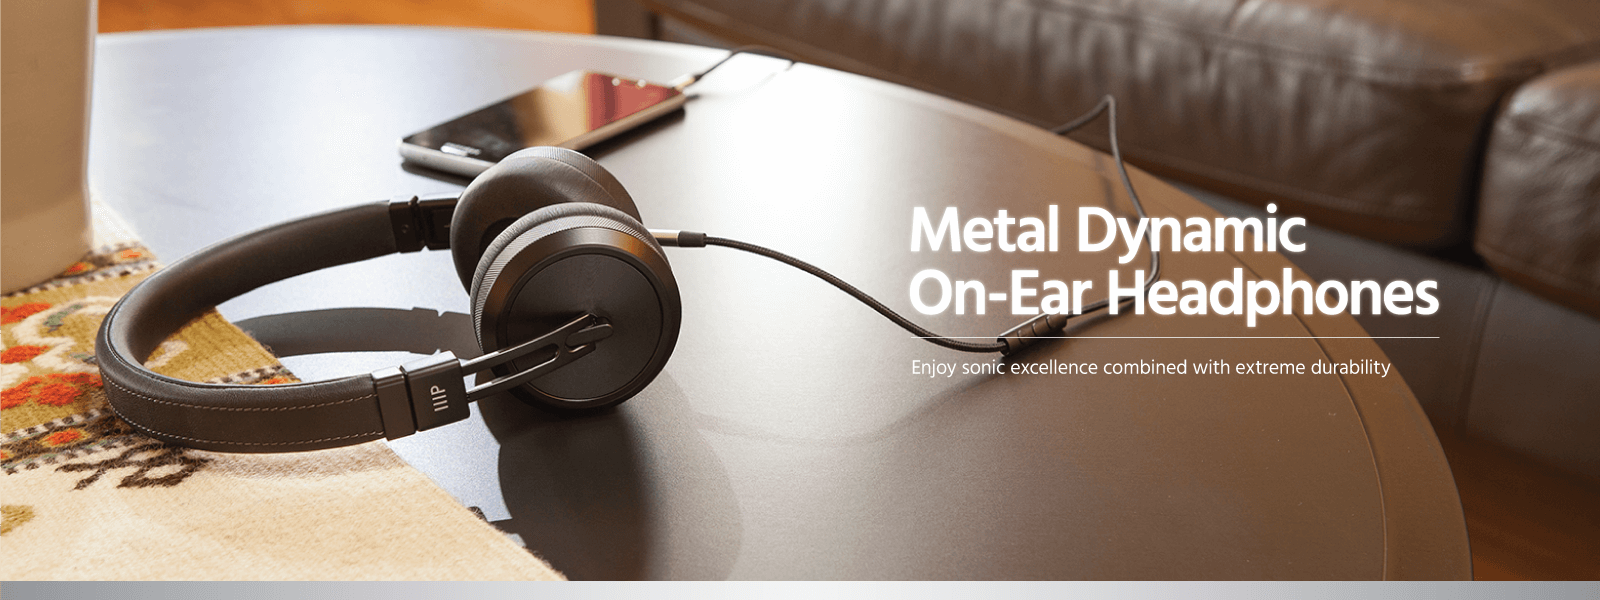 Metal Dynamic On-Ear Headphones